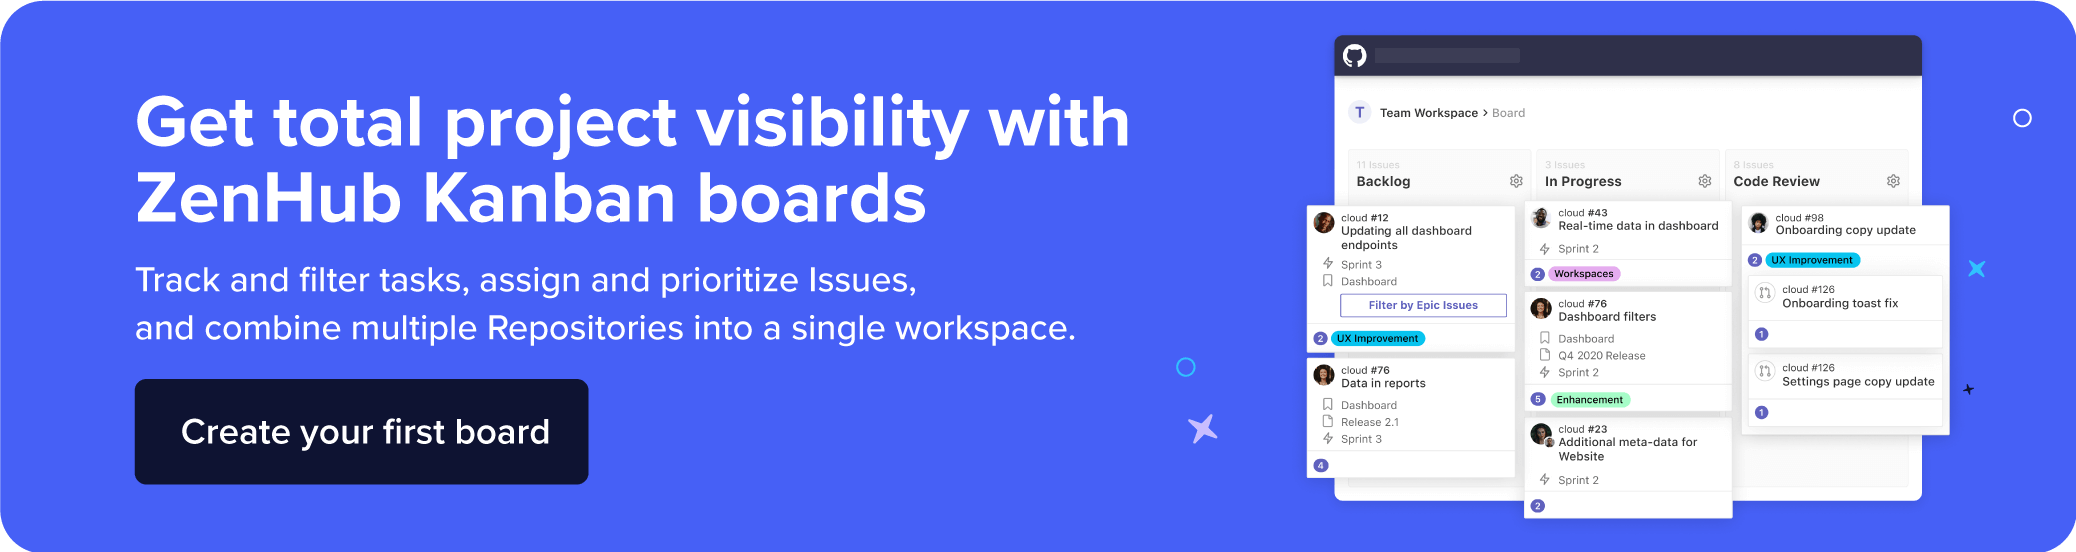 Suggests tracking and filtering tasks, prioritizing Issues, and combining multiple Repositories into a single workspace.